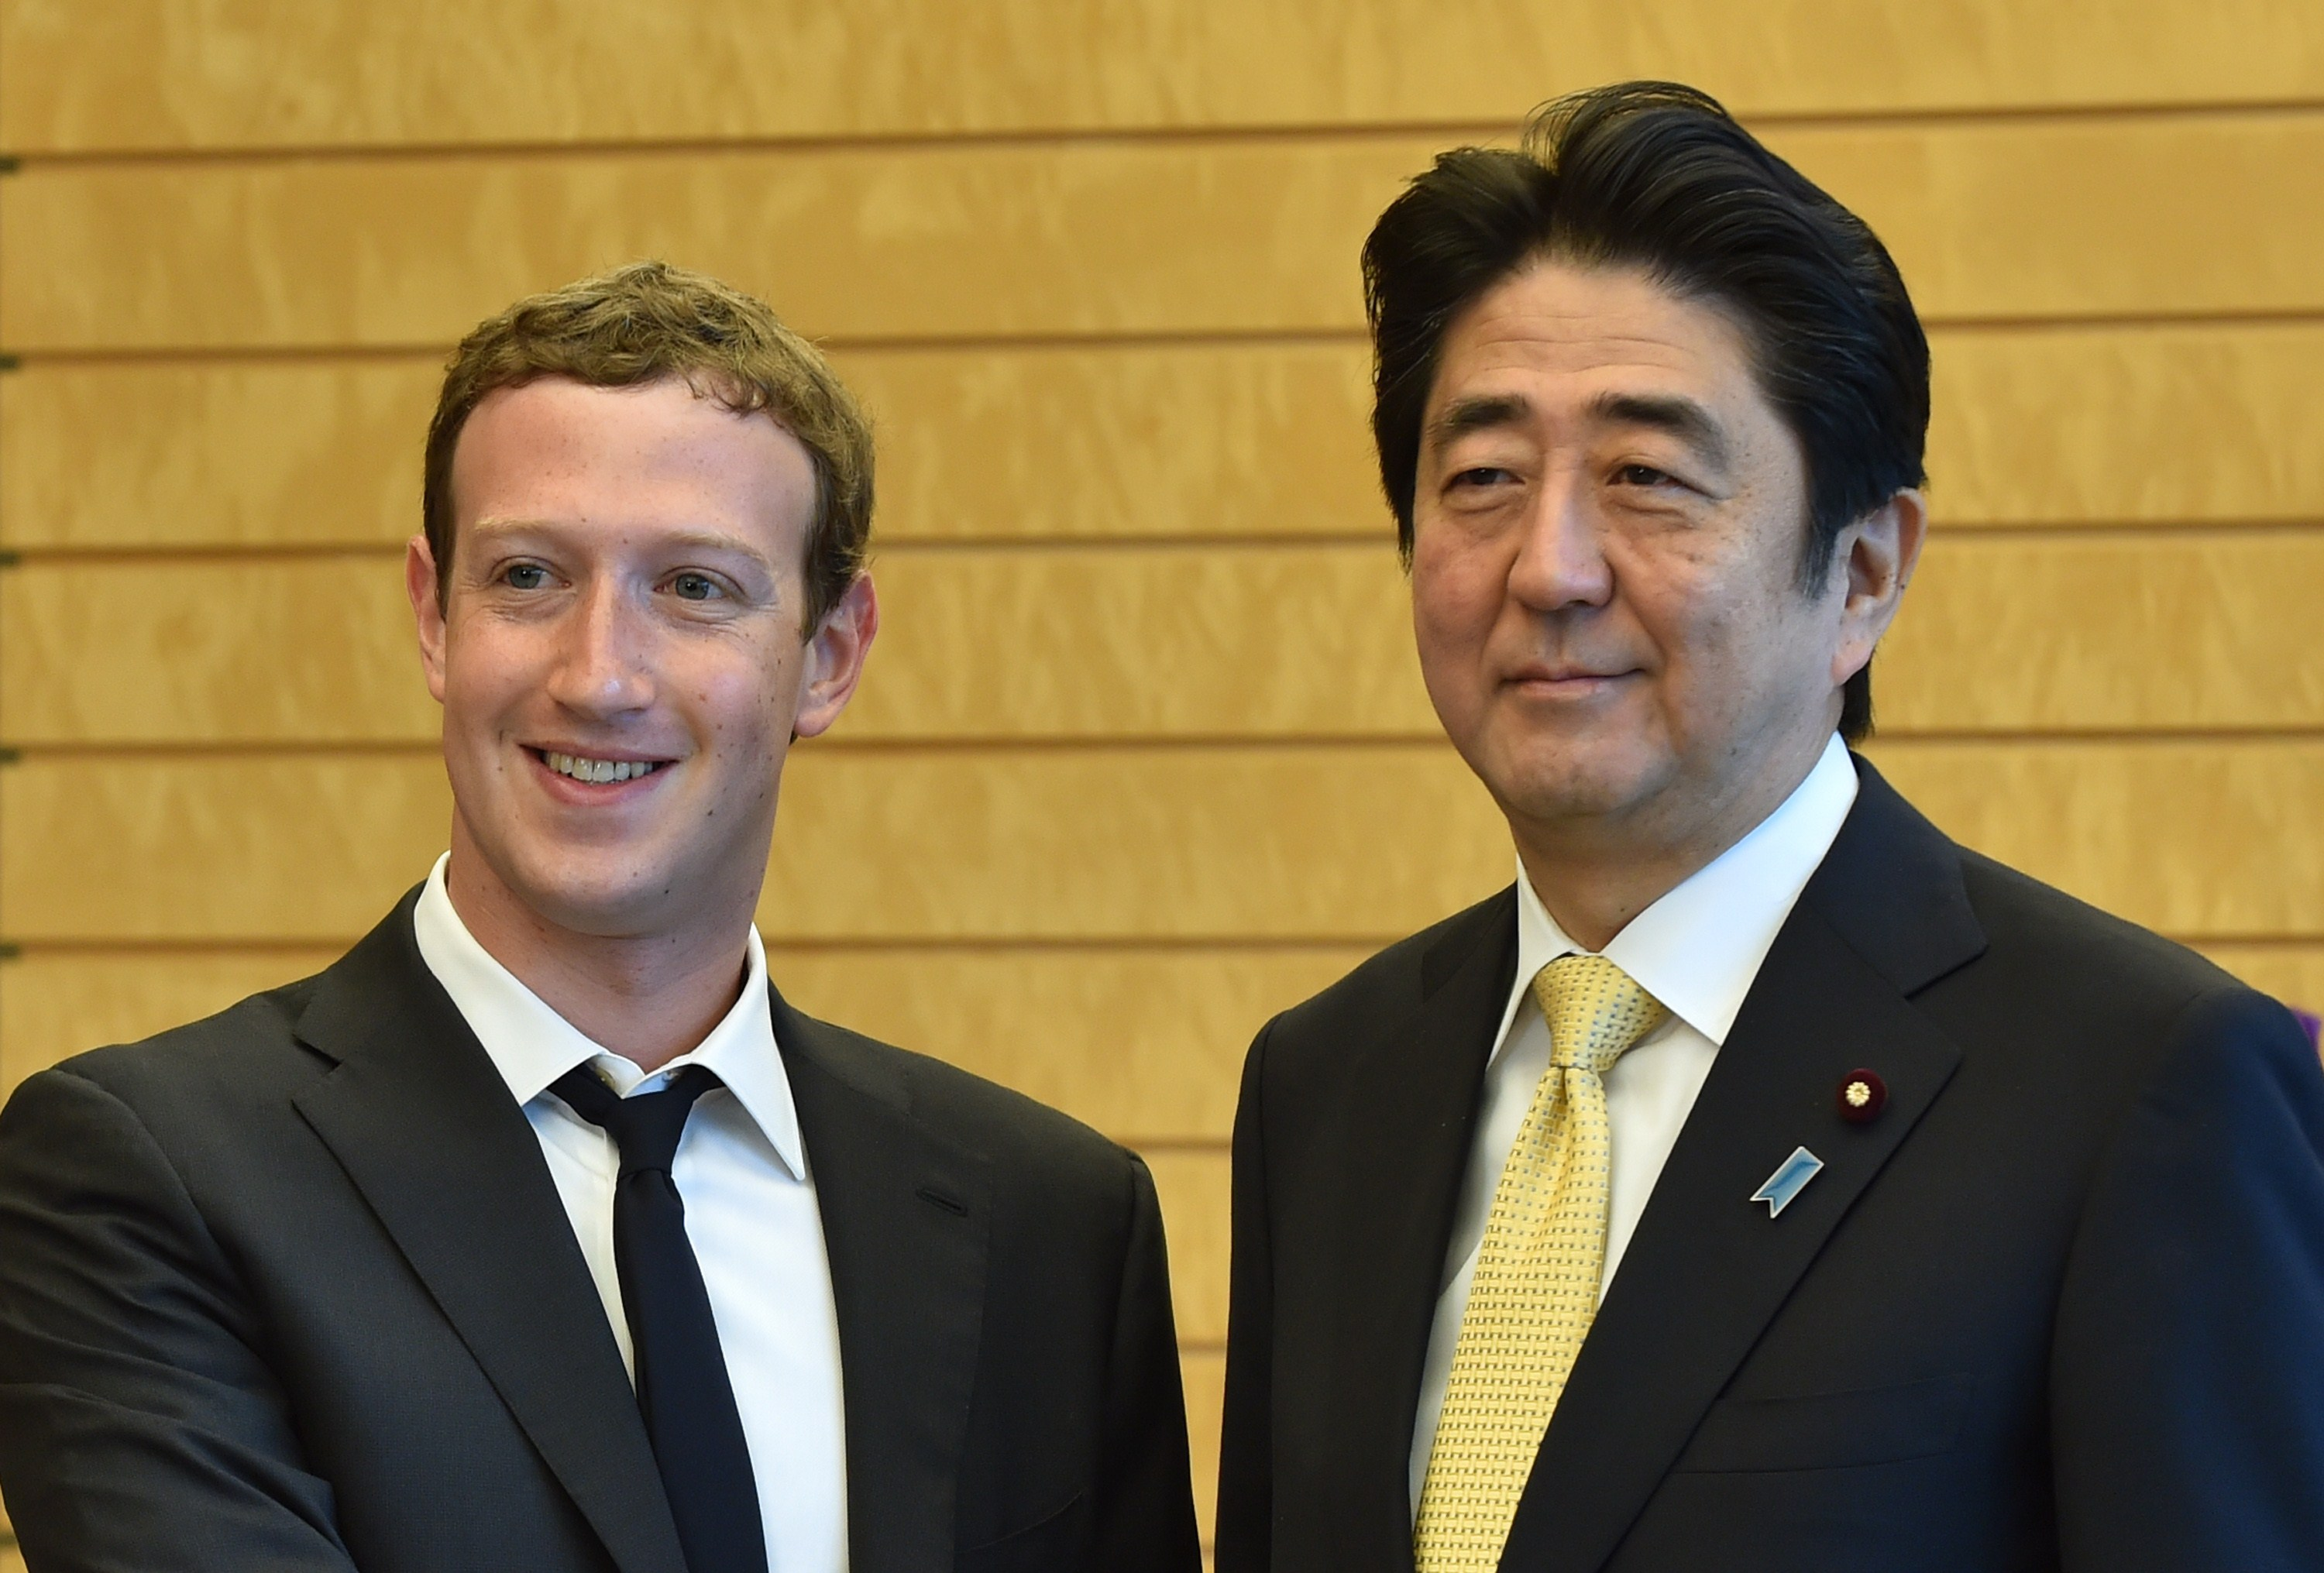 Mark Zuckerberg (L), founder and CEO of Facebook, makes a courtesy call to Japanese Prime Minister Shinzo Abe (R) at the latter's official residence in Tokyo on October 20, 2014.